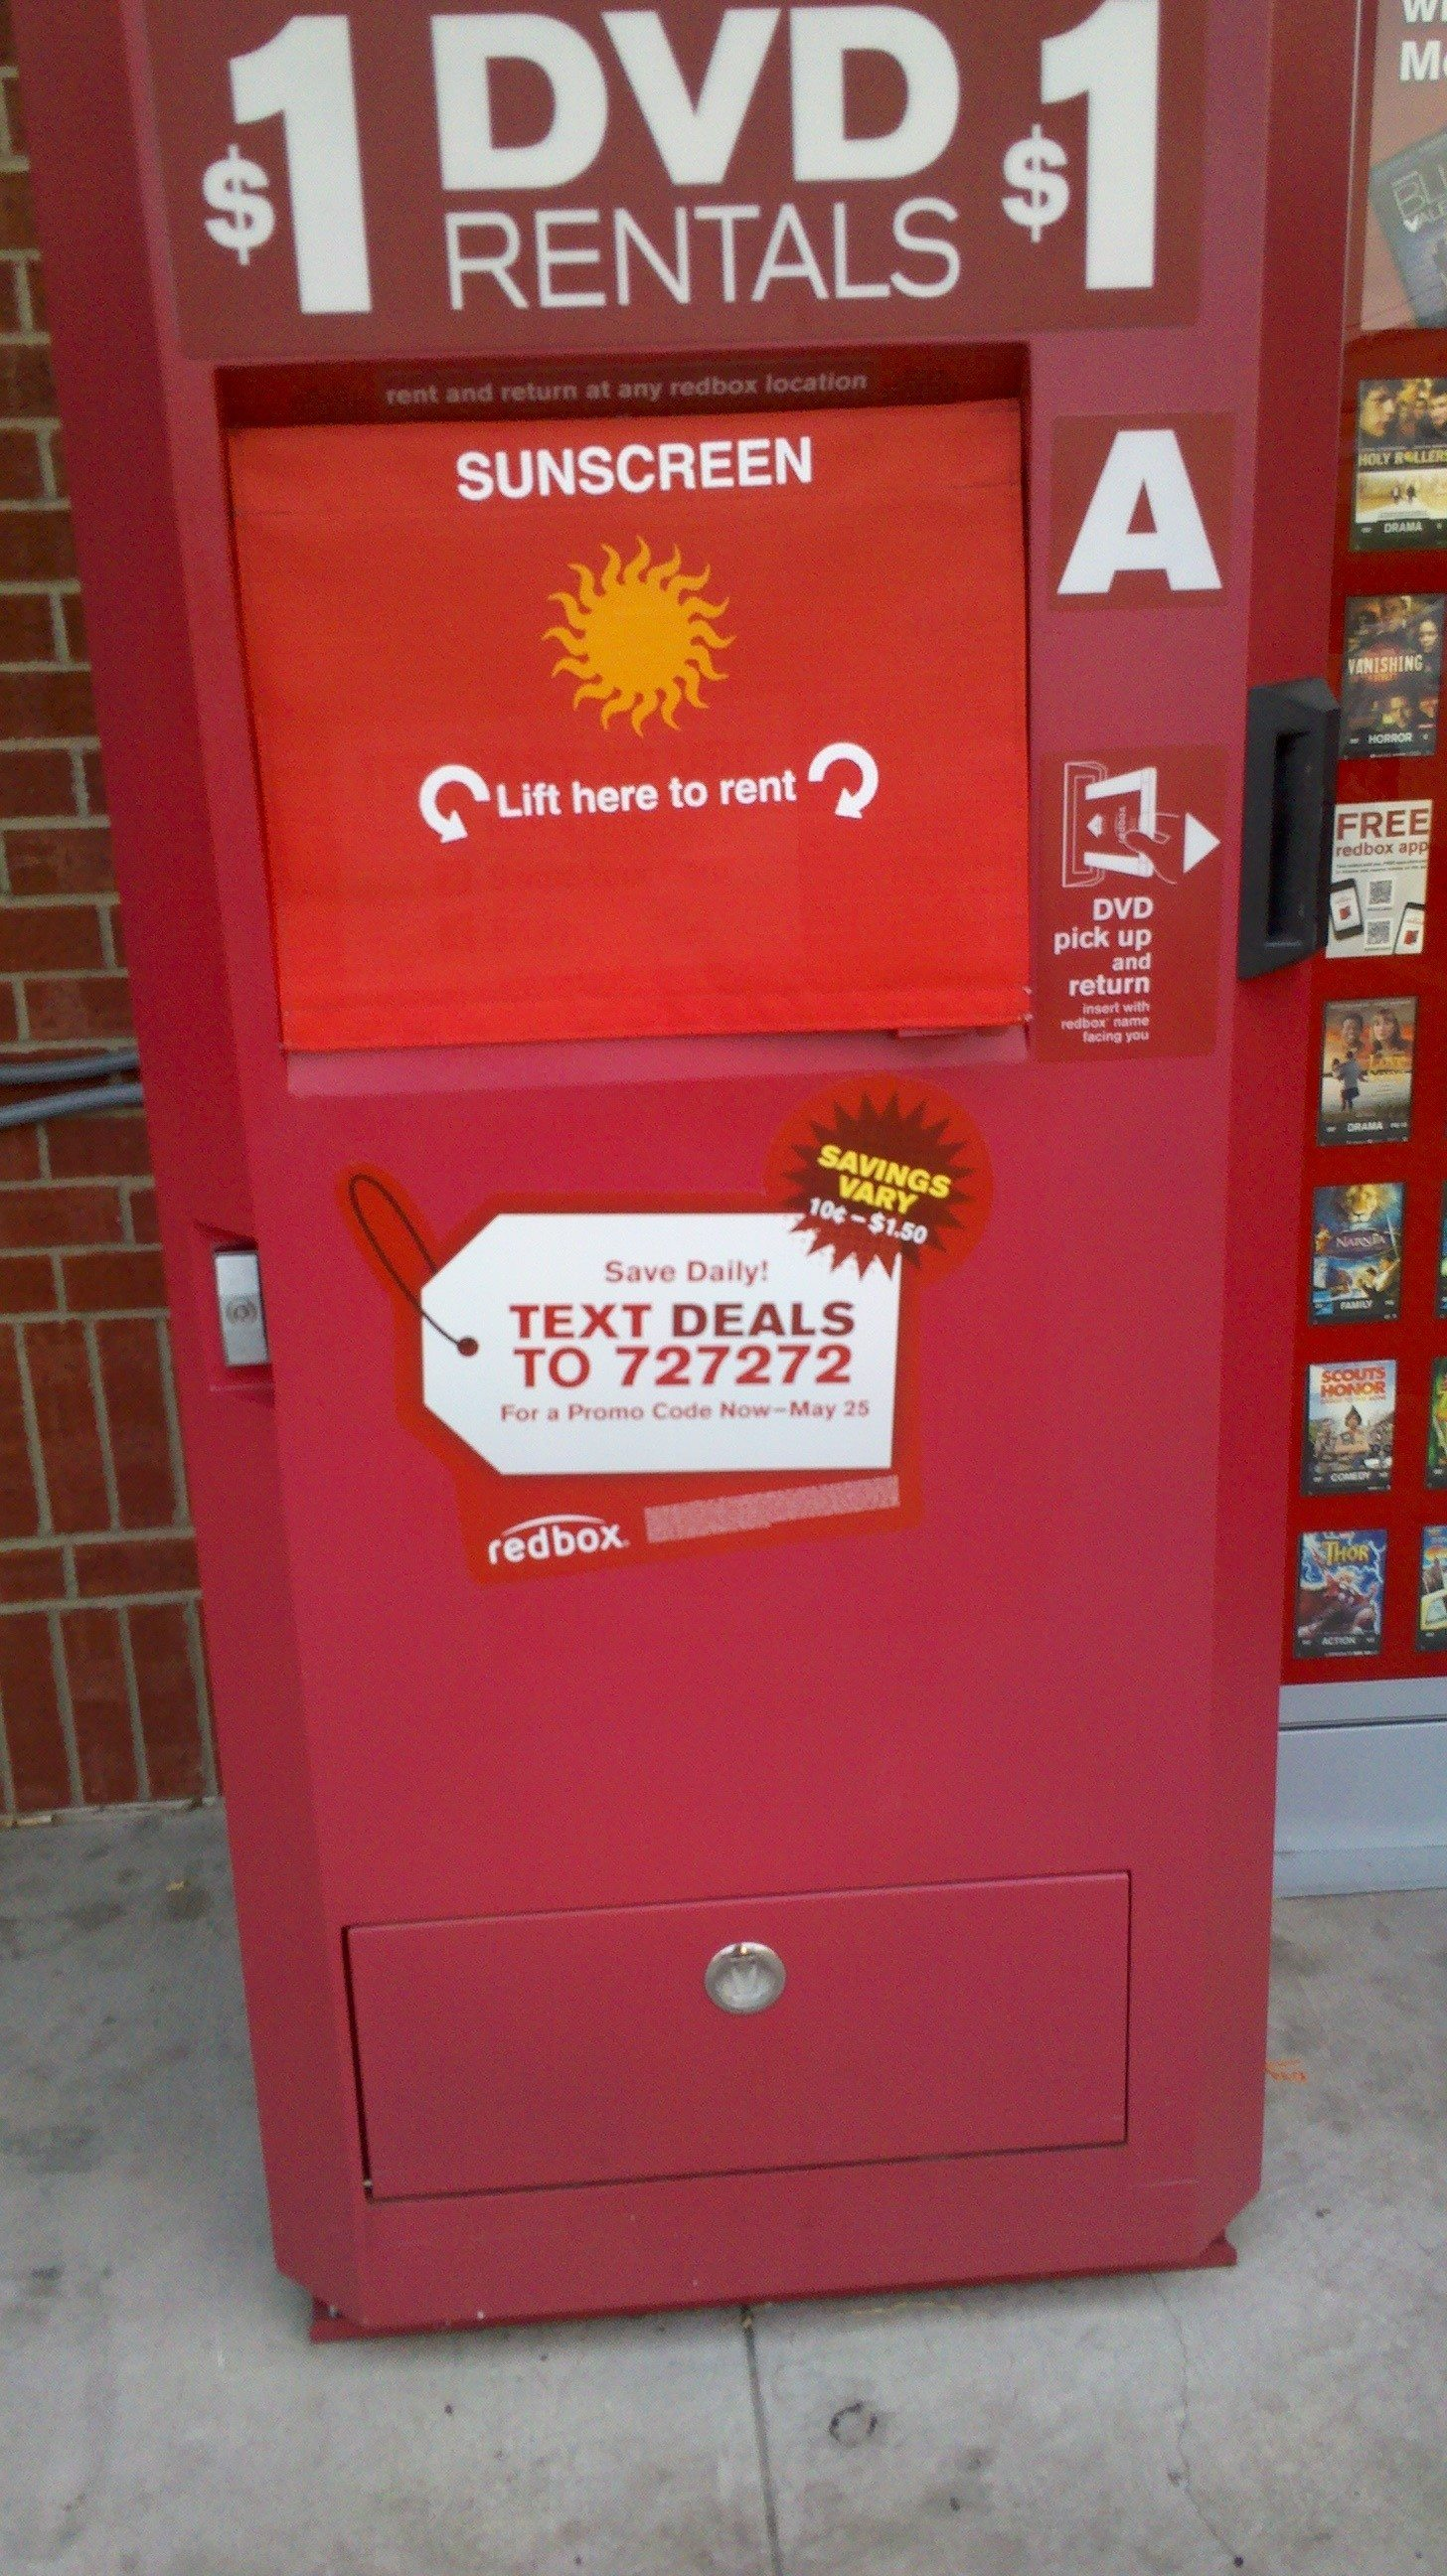 Example of sun shield in Redbox. Click for full image